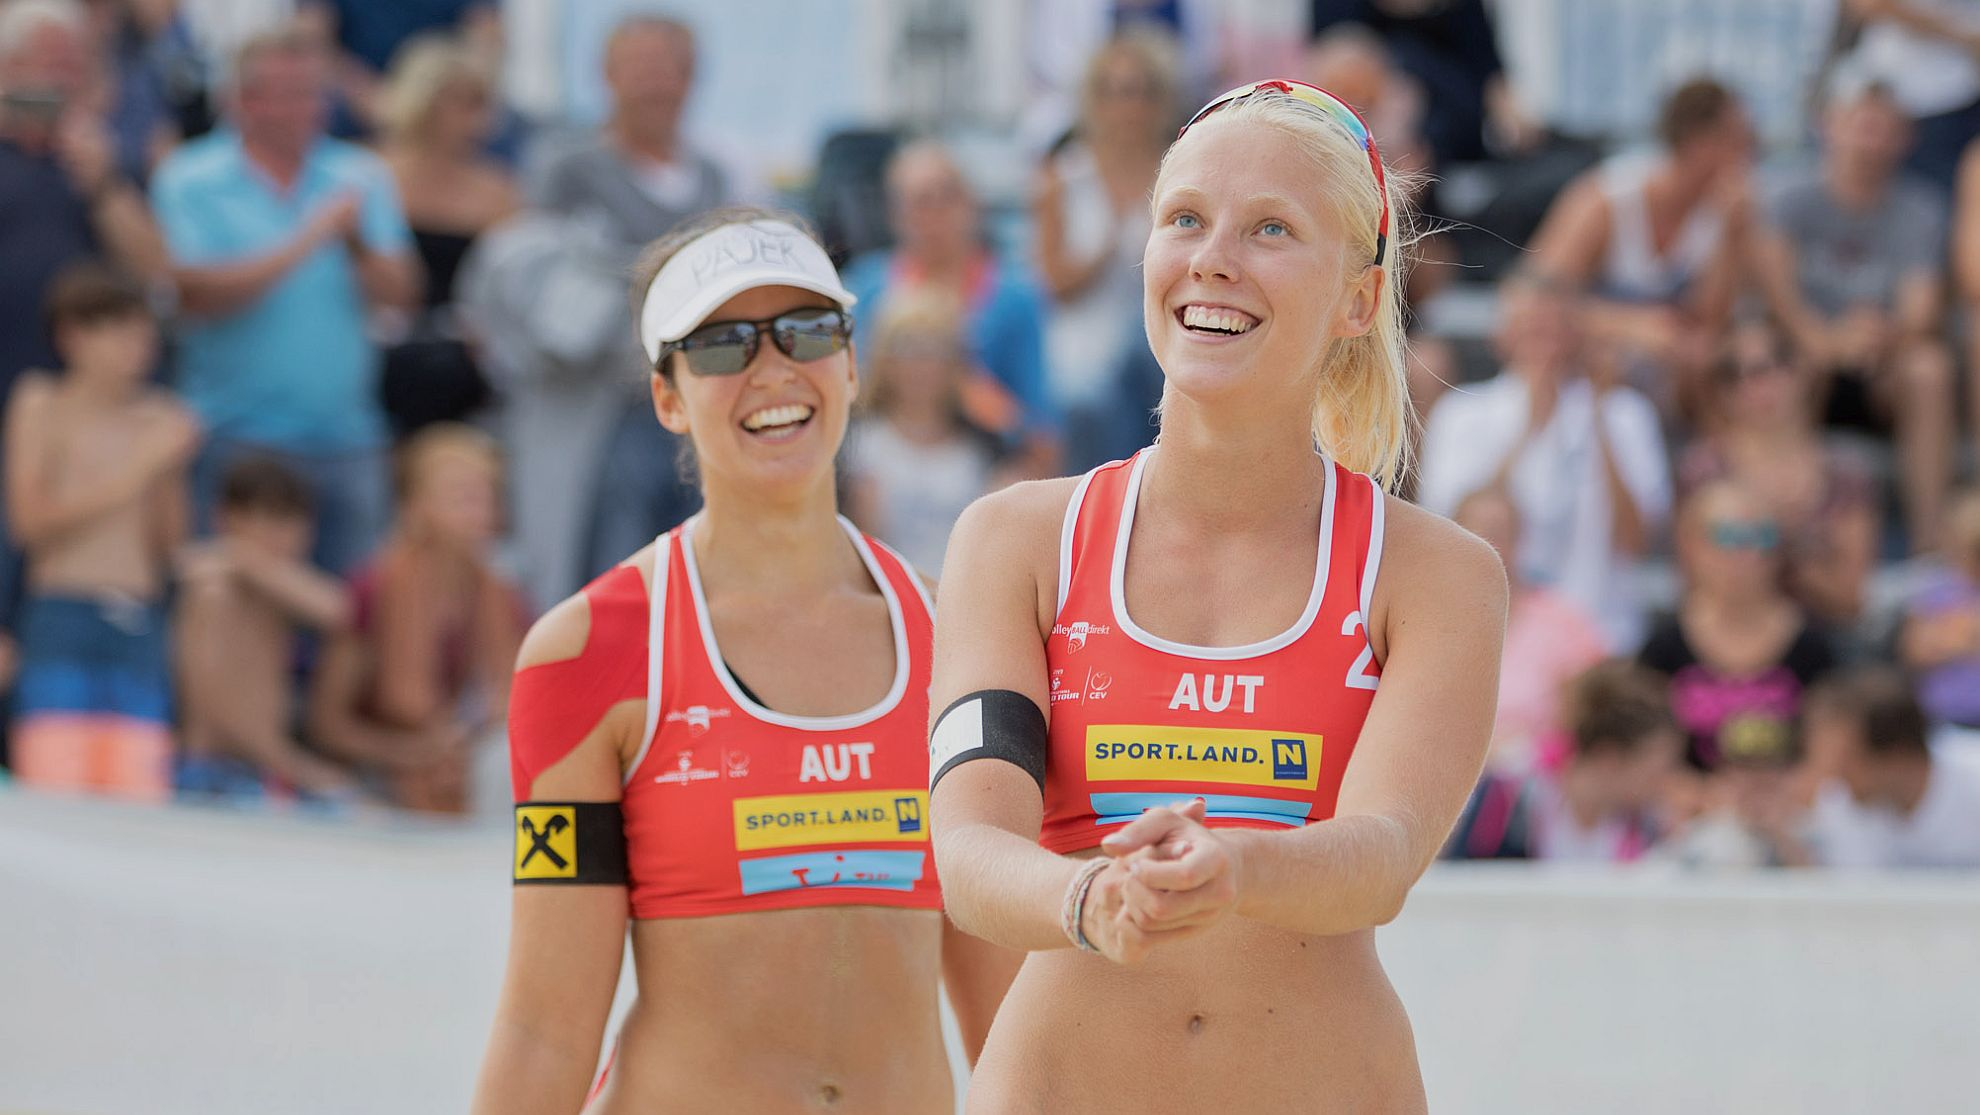 FIVB World Tour Baden Open, Franziska Friedl/Nadine Strauss - FOTO © Rainer Mirau